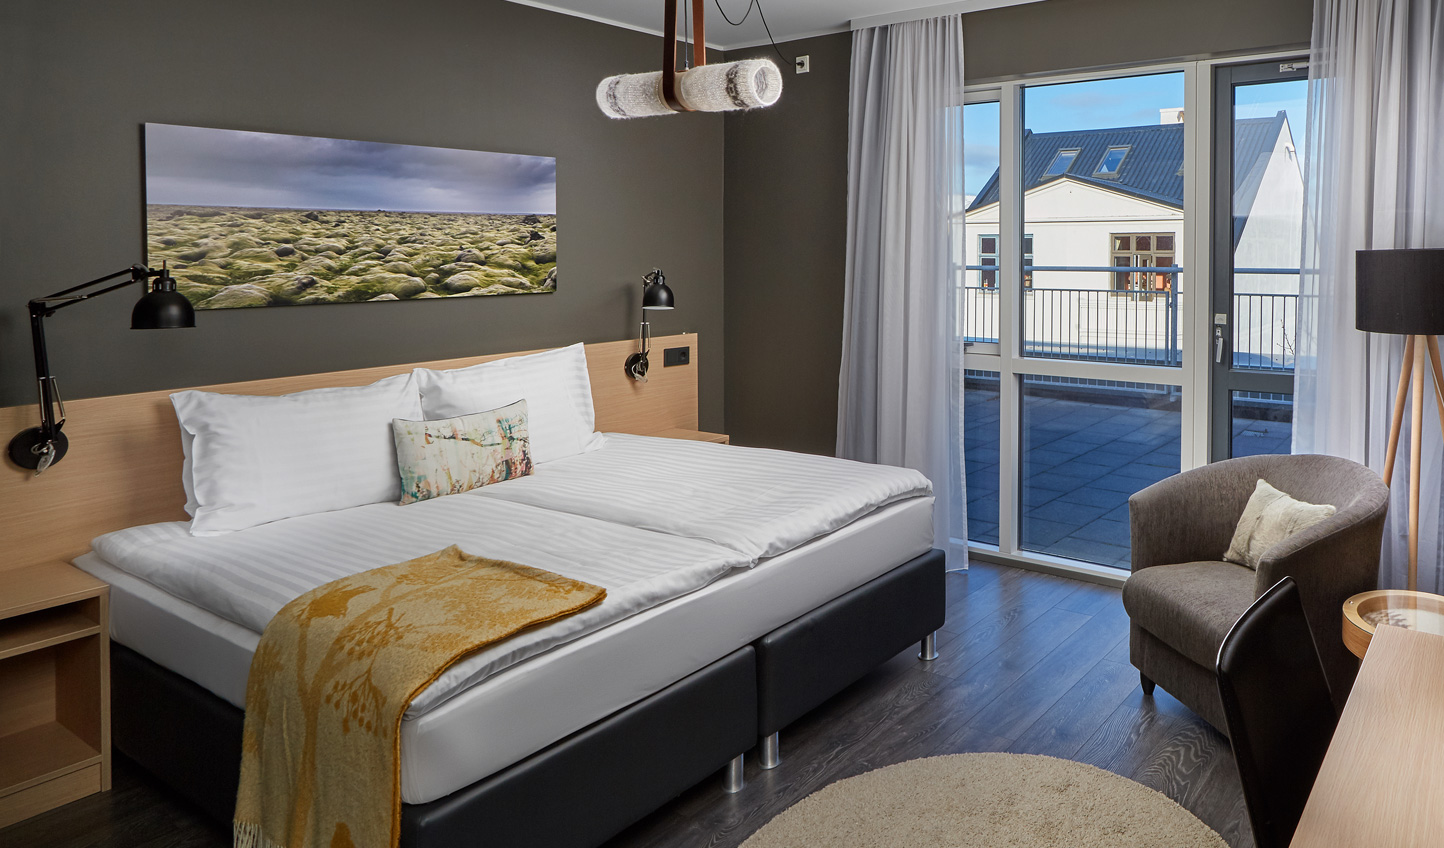 Step out onto your balcony for views across Reykjavik